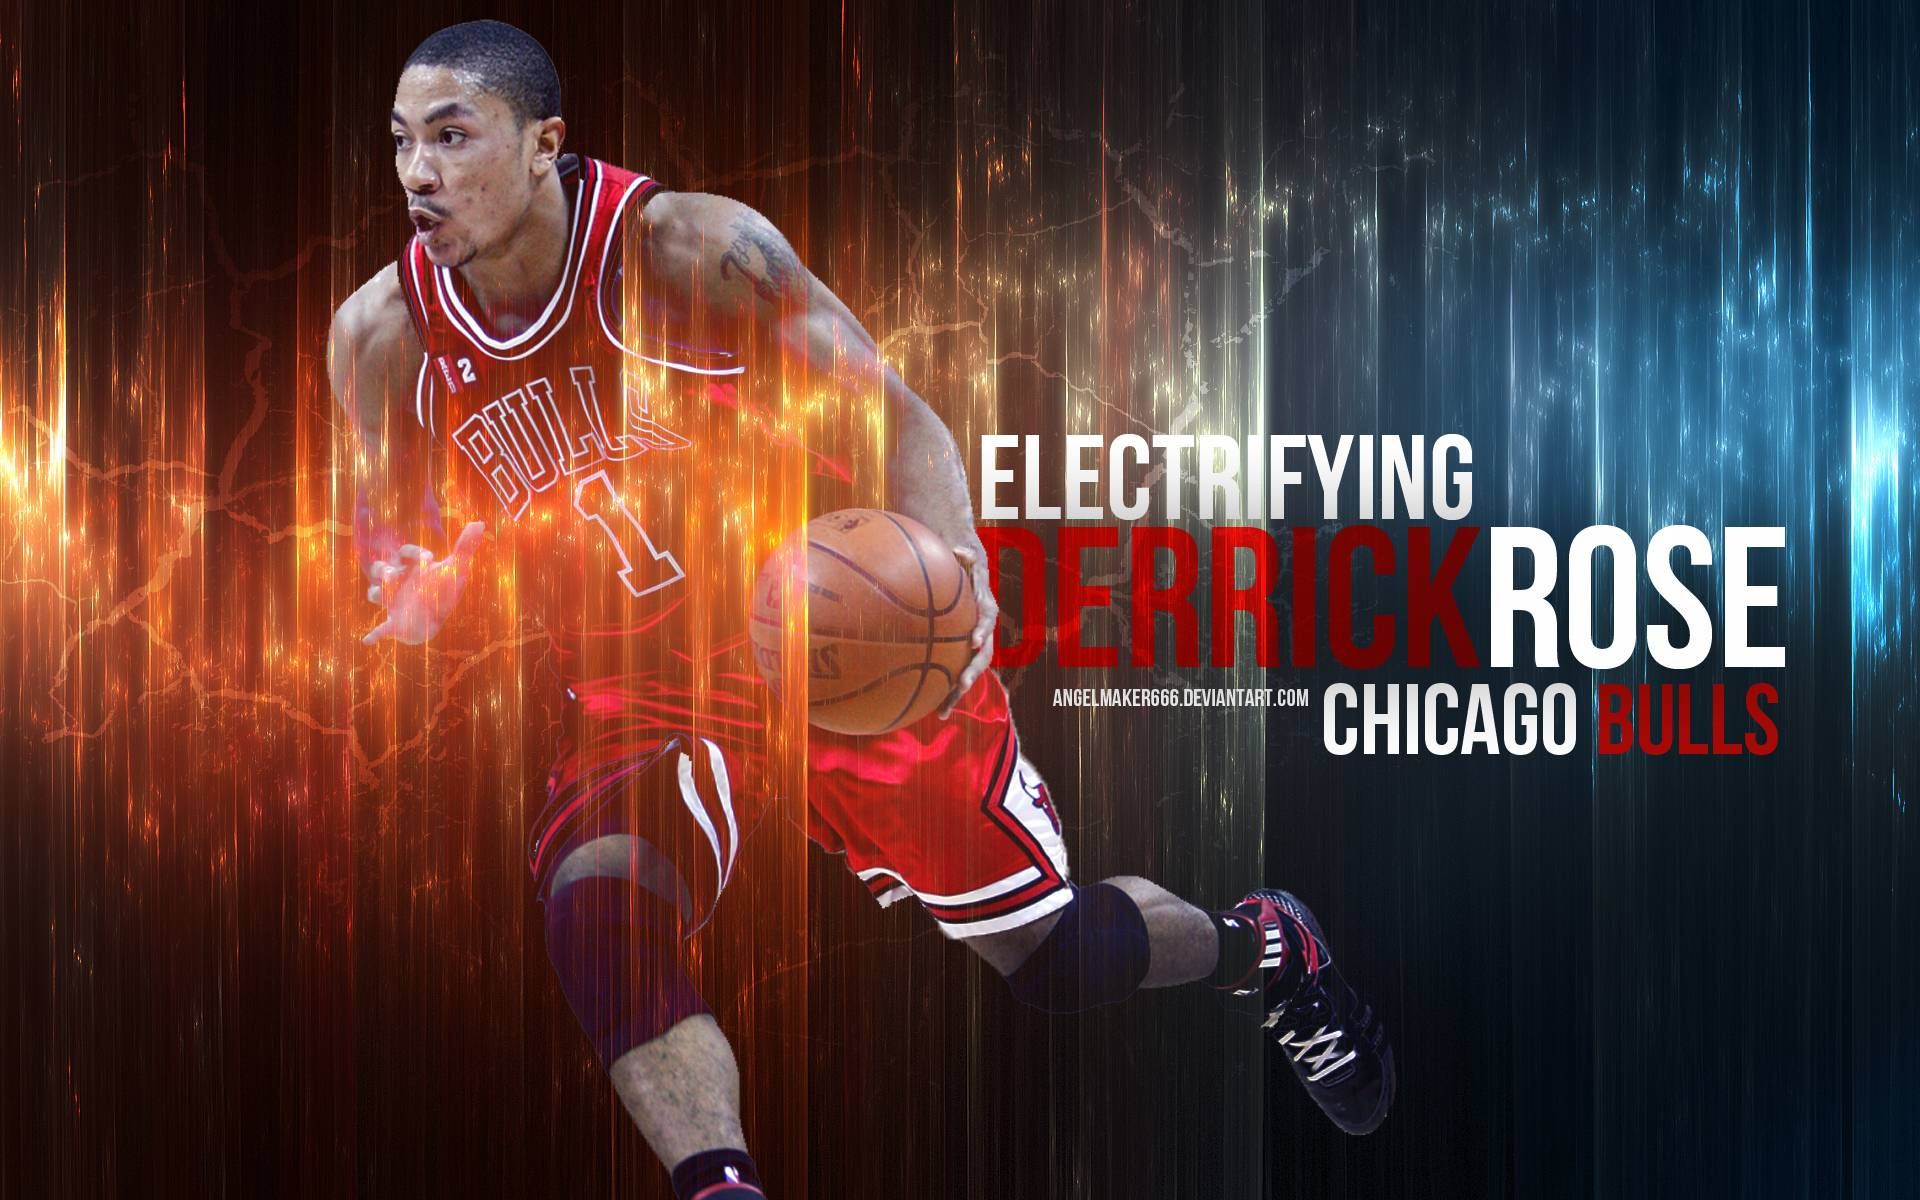 Derrick rose hd wallpapers wallpaper cave wallpapers for derrick rose wallpaper mvp voltagebd Image collections